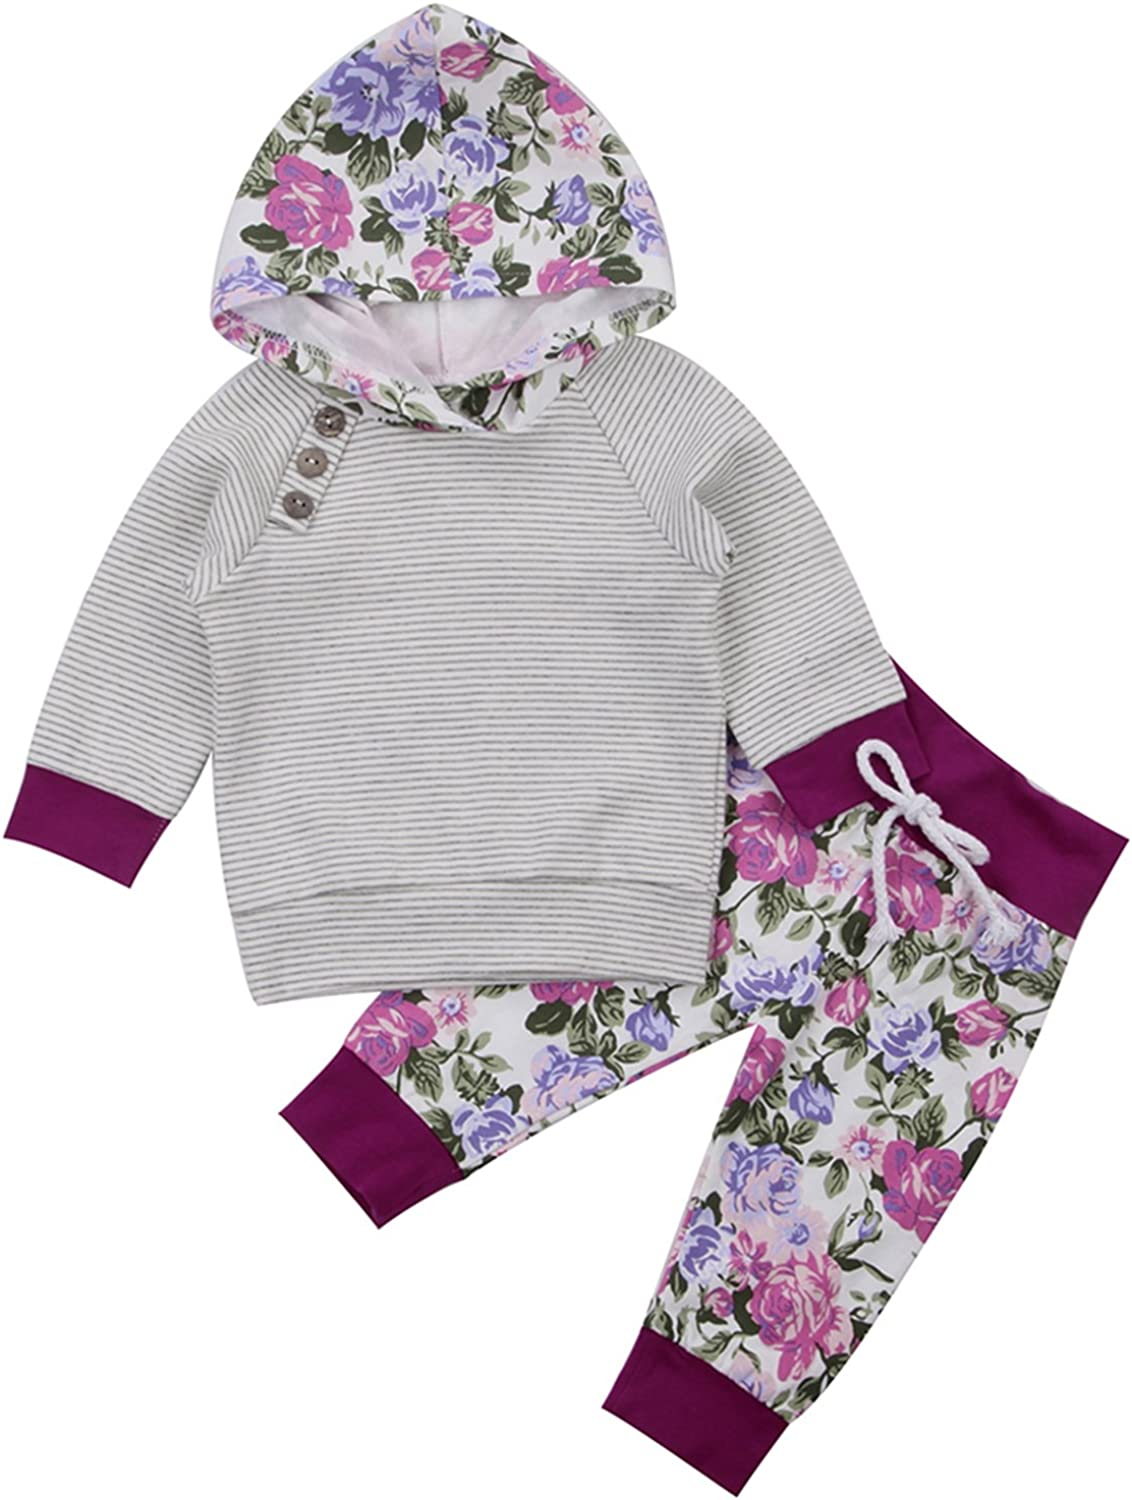 Newborn Baby Boy Girl Floral Long Sleeve Hoodie Tops Pants Clothes Outfits Set Autumn Winter